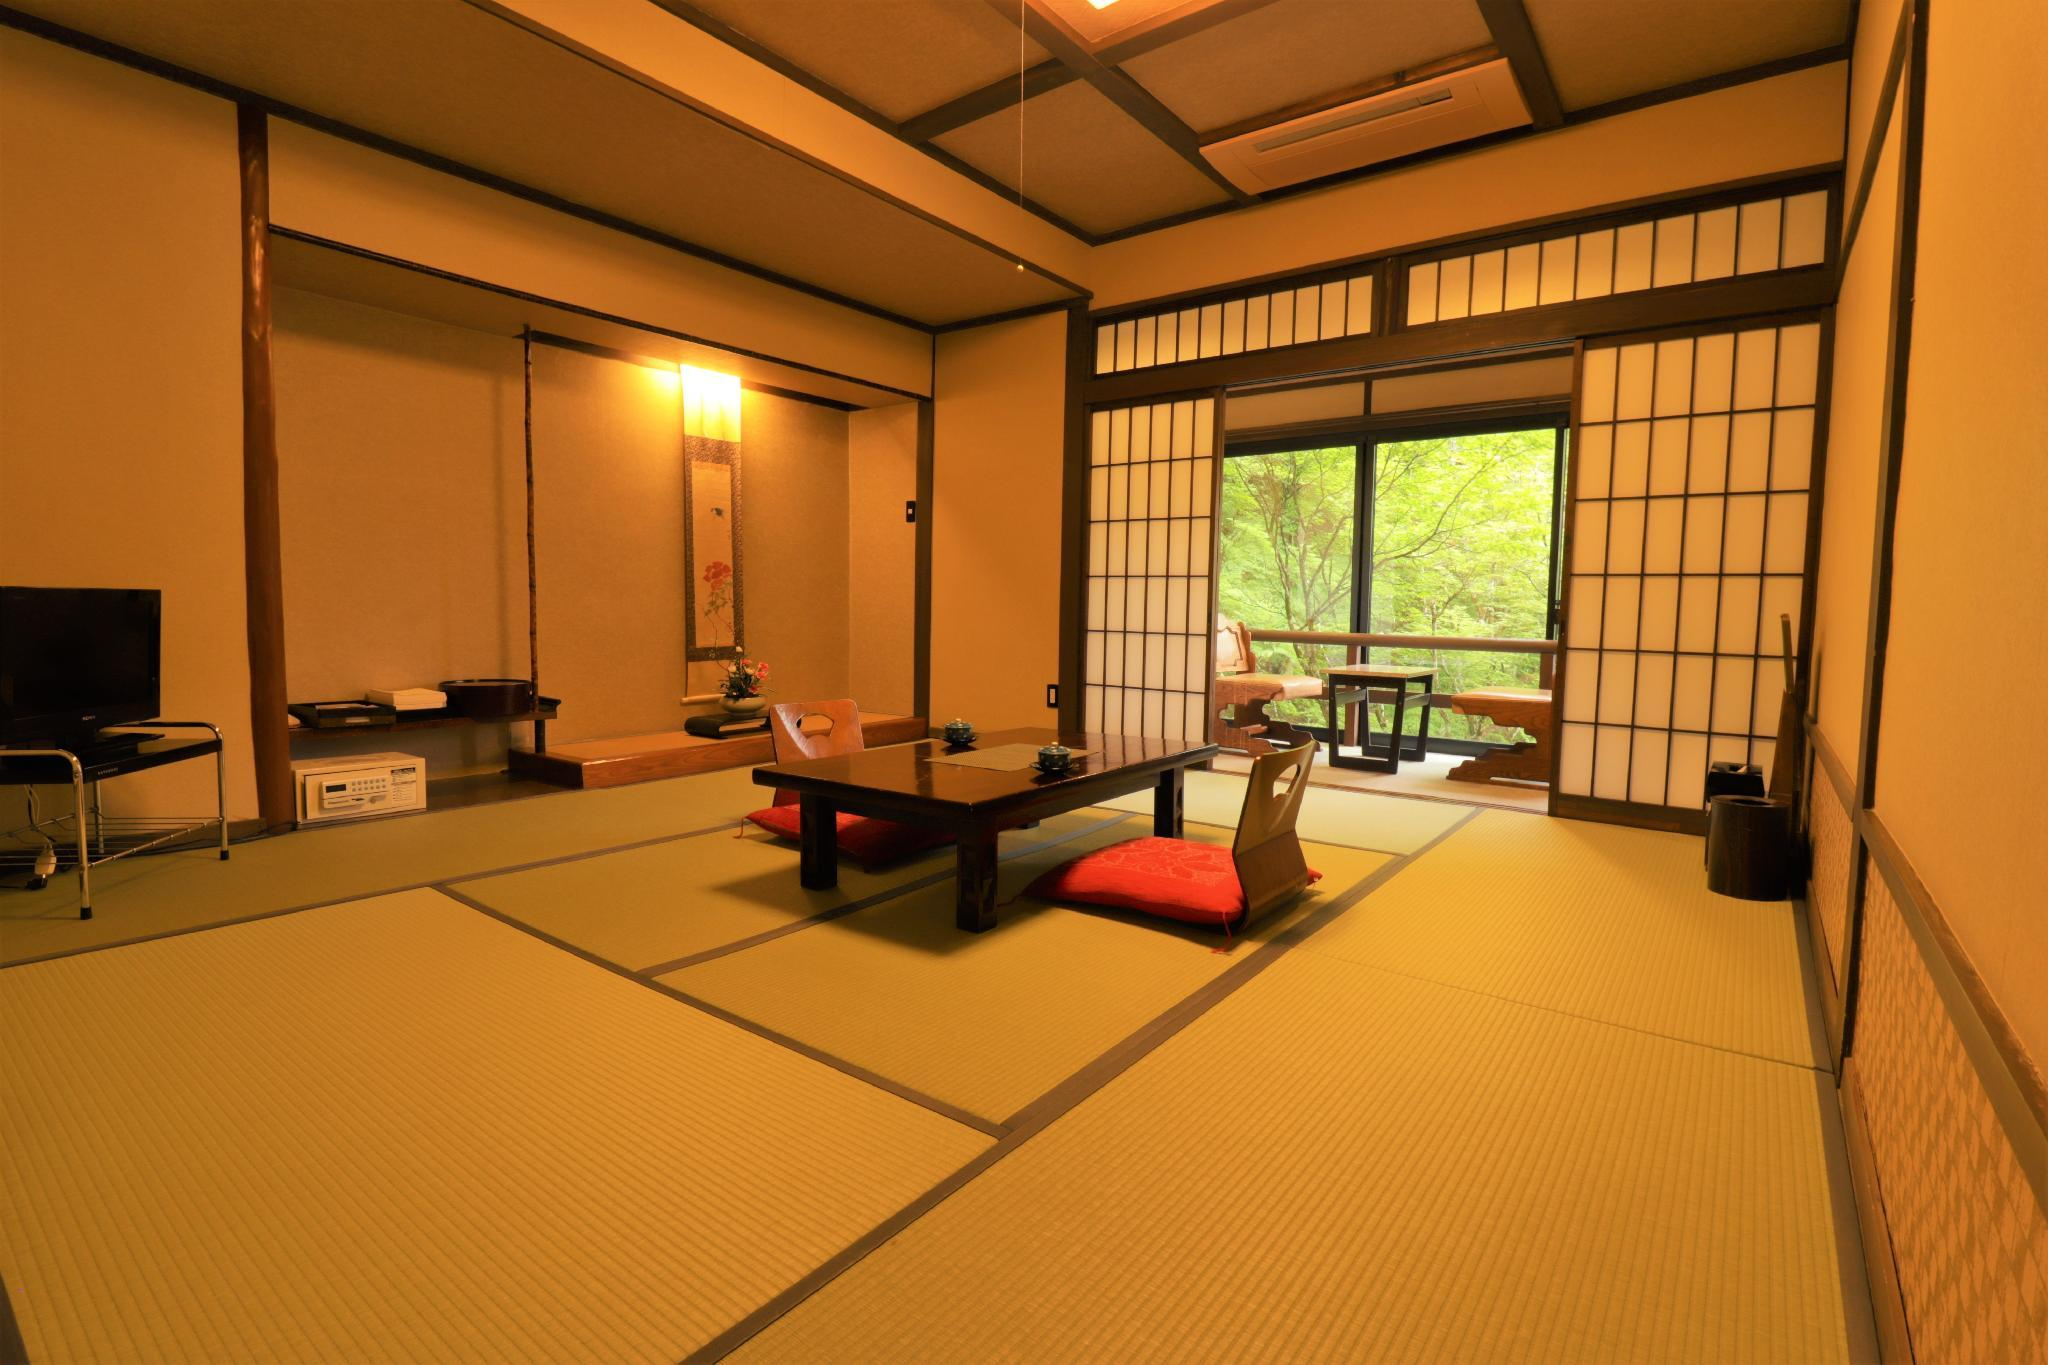 和室 スタンダード(3名) (Standard Japanese Style Room for 3 People)